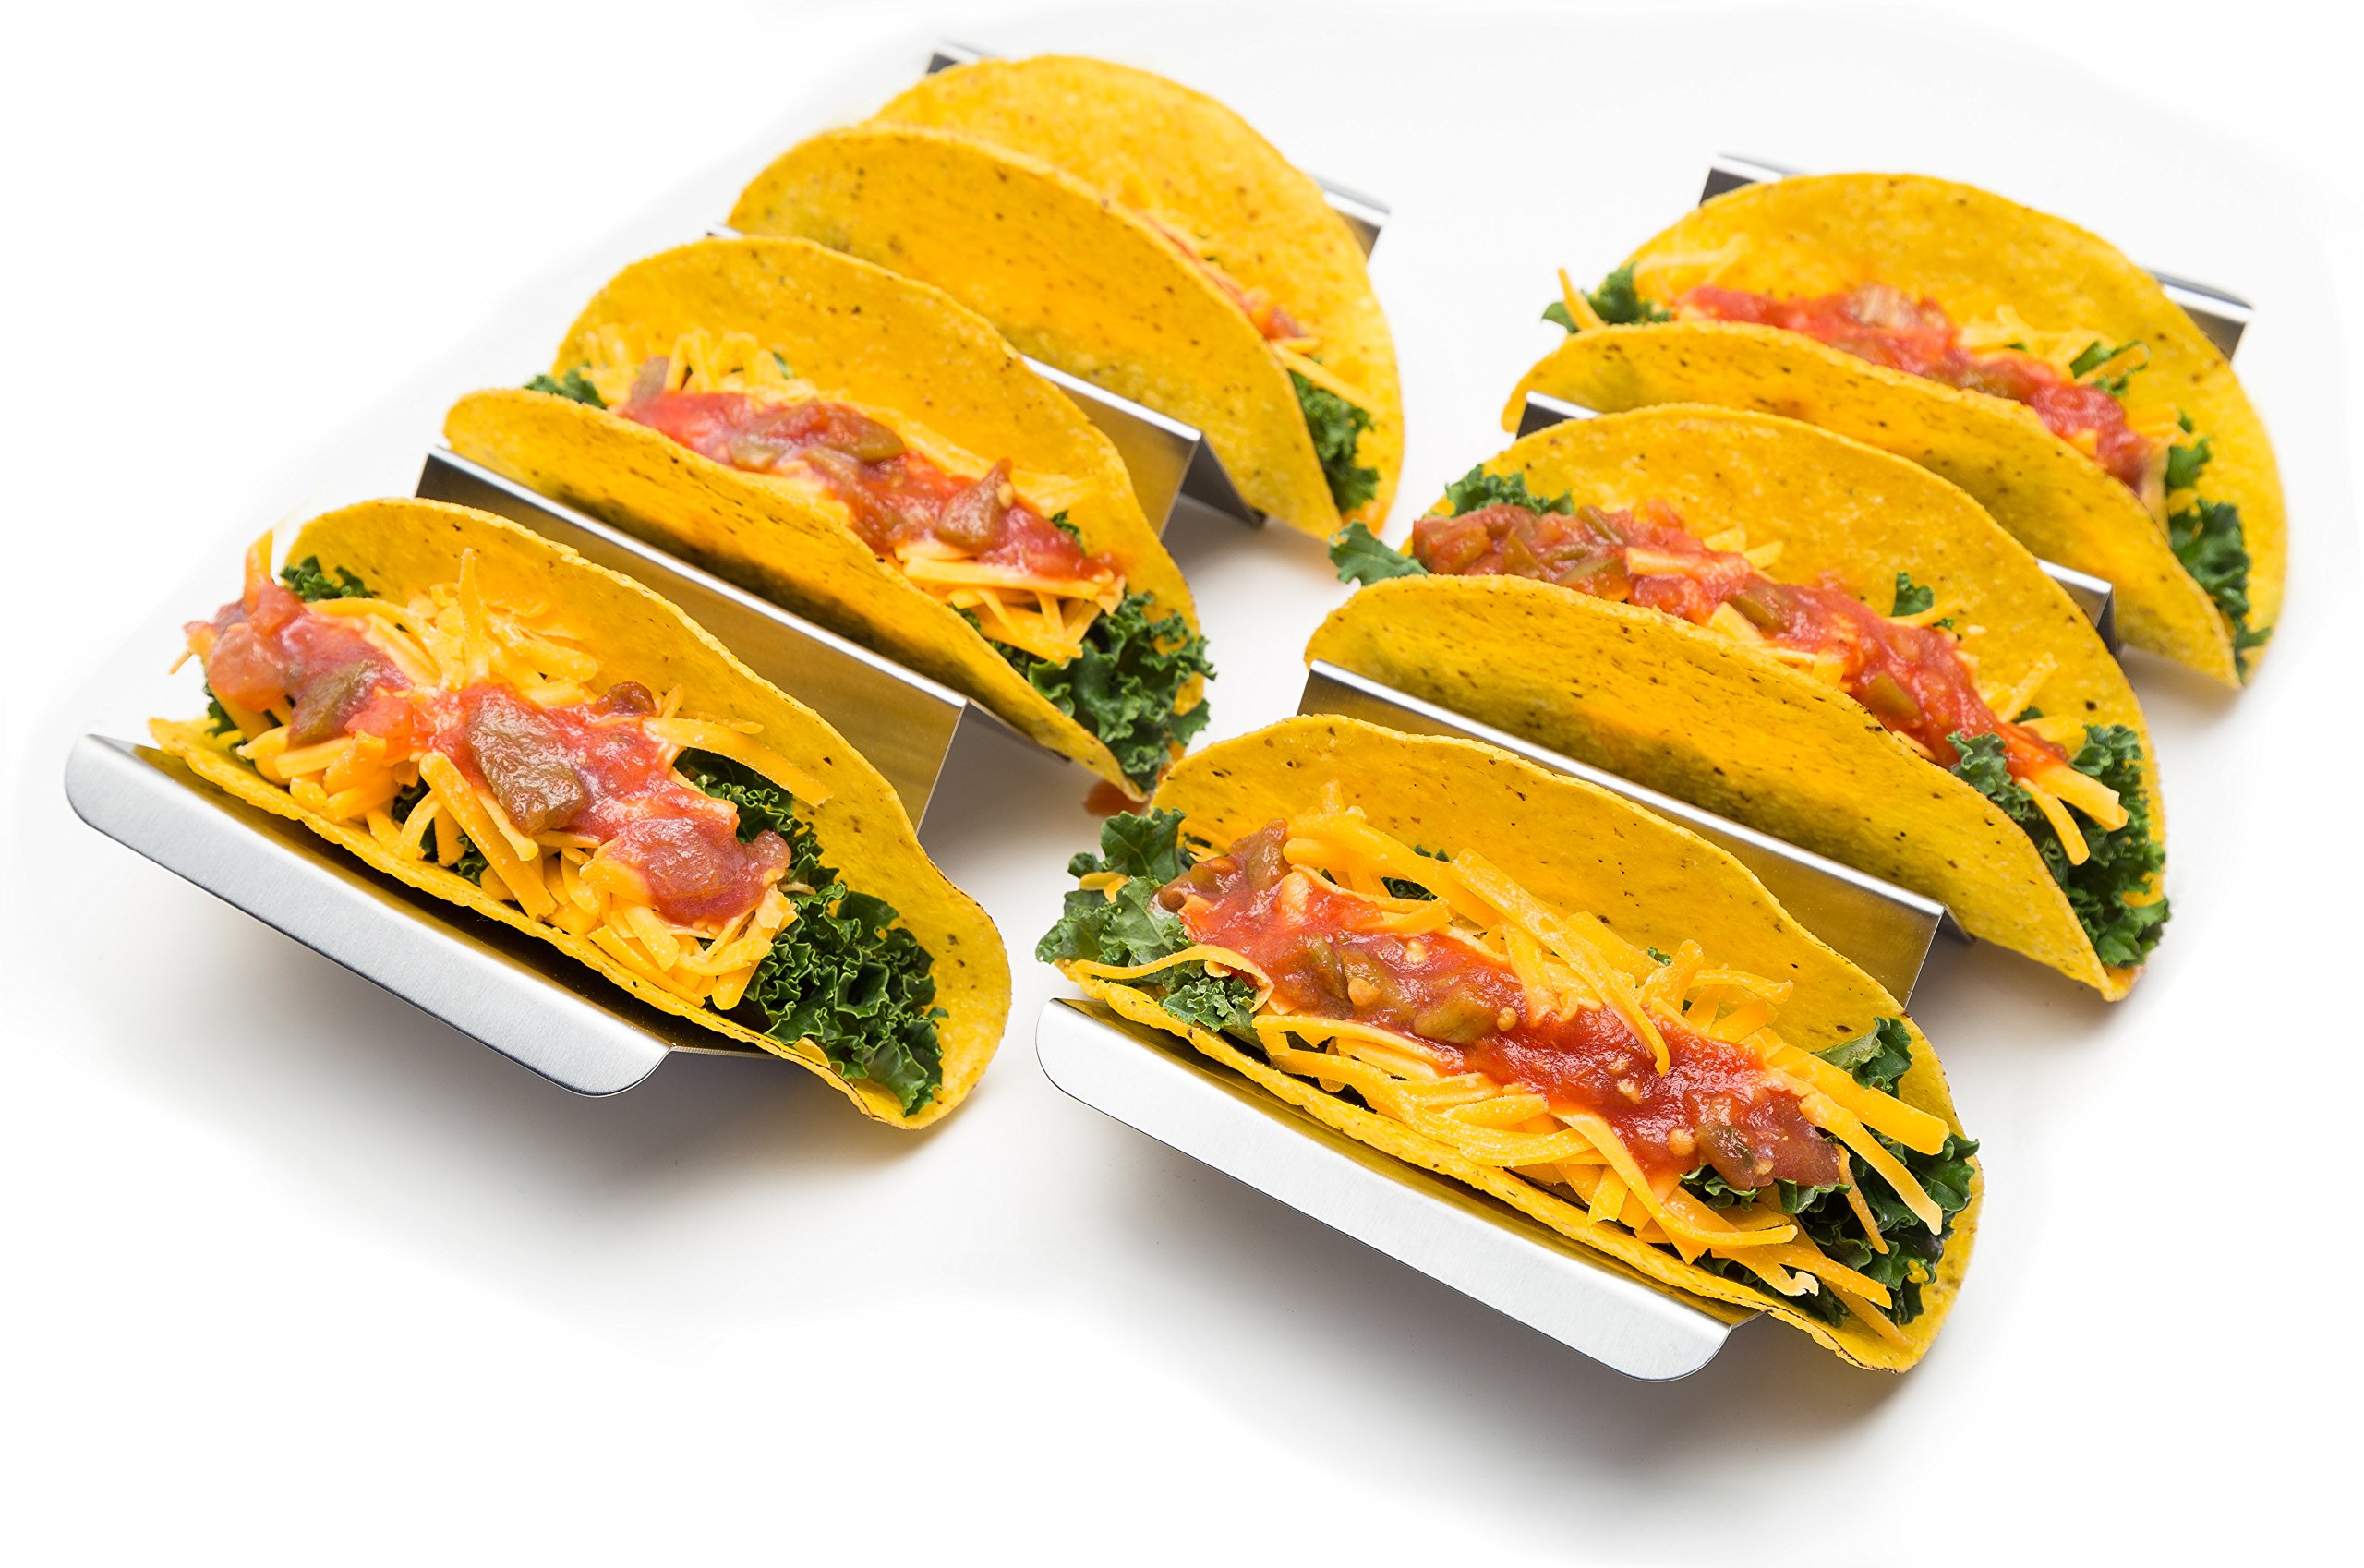 2 Pack - Restaurant Quality Stainless Steel Taco Holder Stand Tray with Handles, Easy Fill Rack, Holders are Oven, Grill and Dishwasher Safe, 9.75'' x 4''